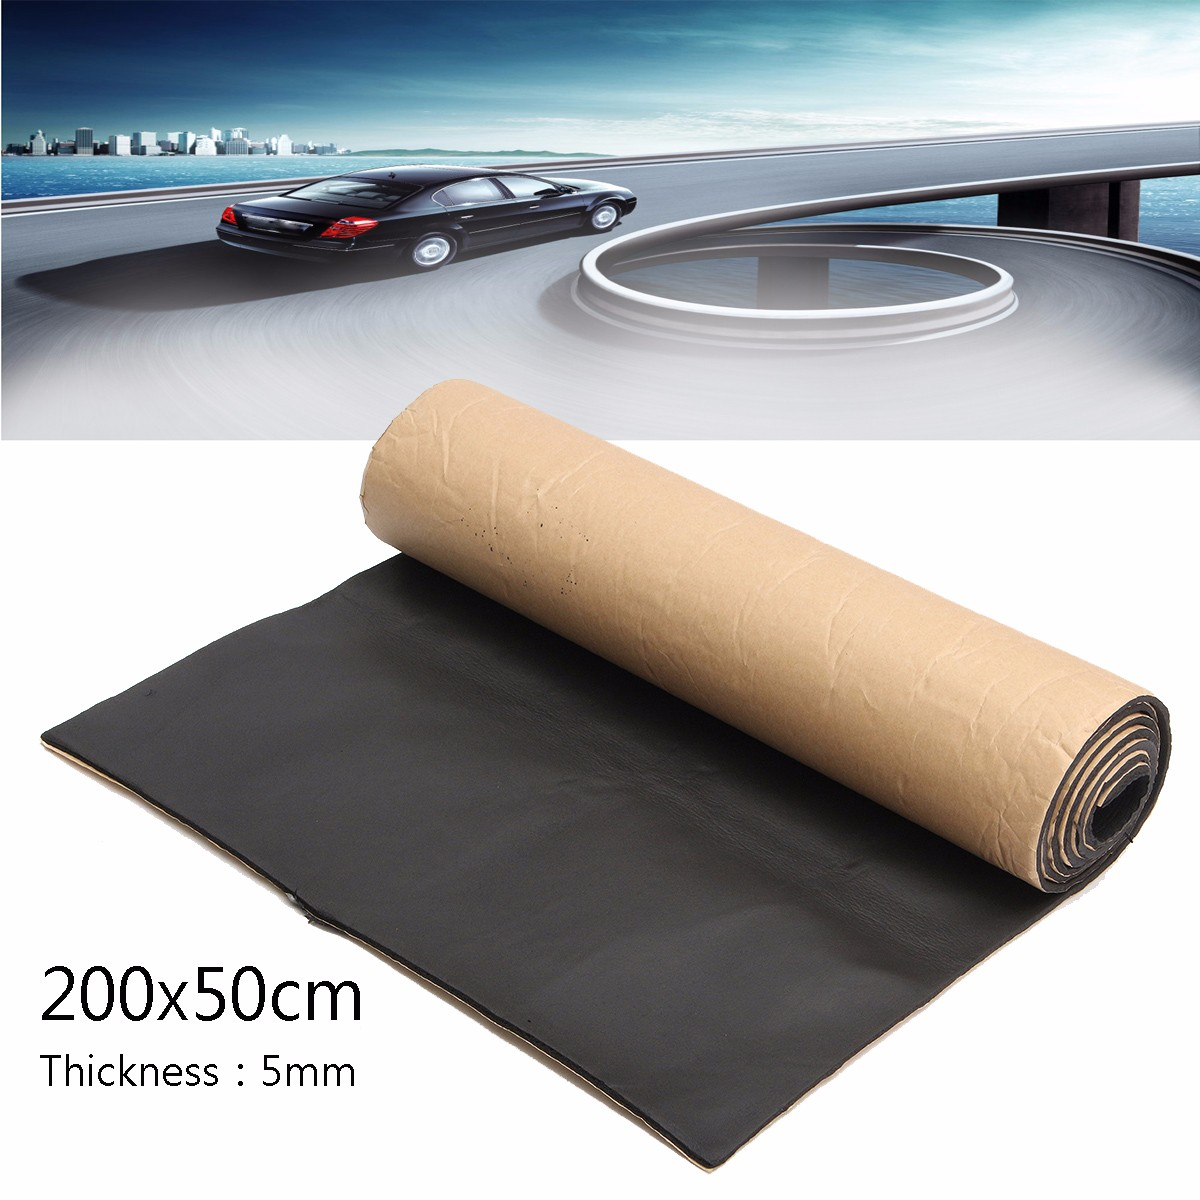 1Roll 200cmx50cm Car Sound Proofing Deadening Anti-noise Sound Insulation Cotton Heat Closed Cell Foam Interior Accessories image